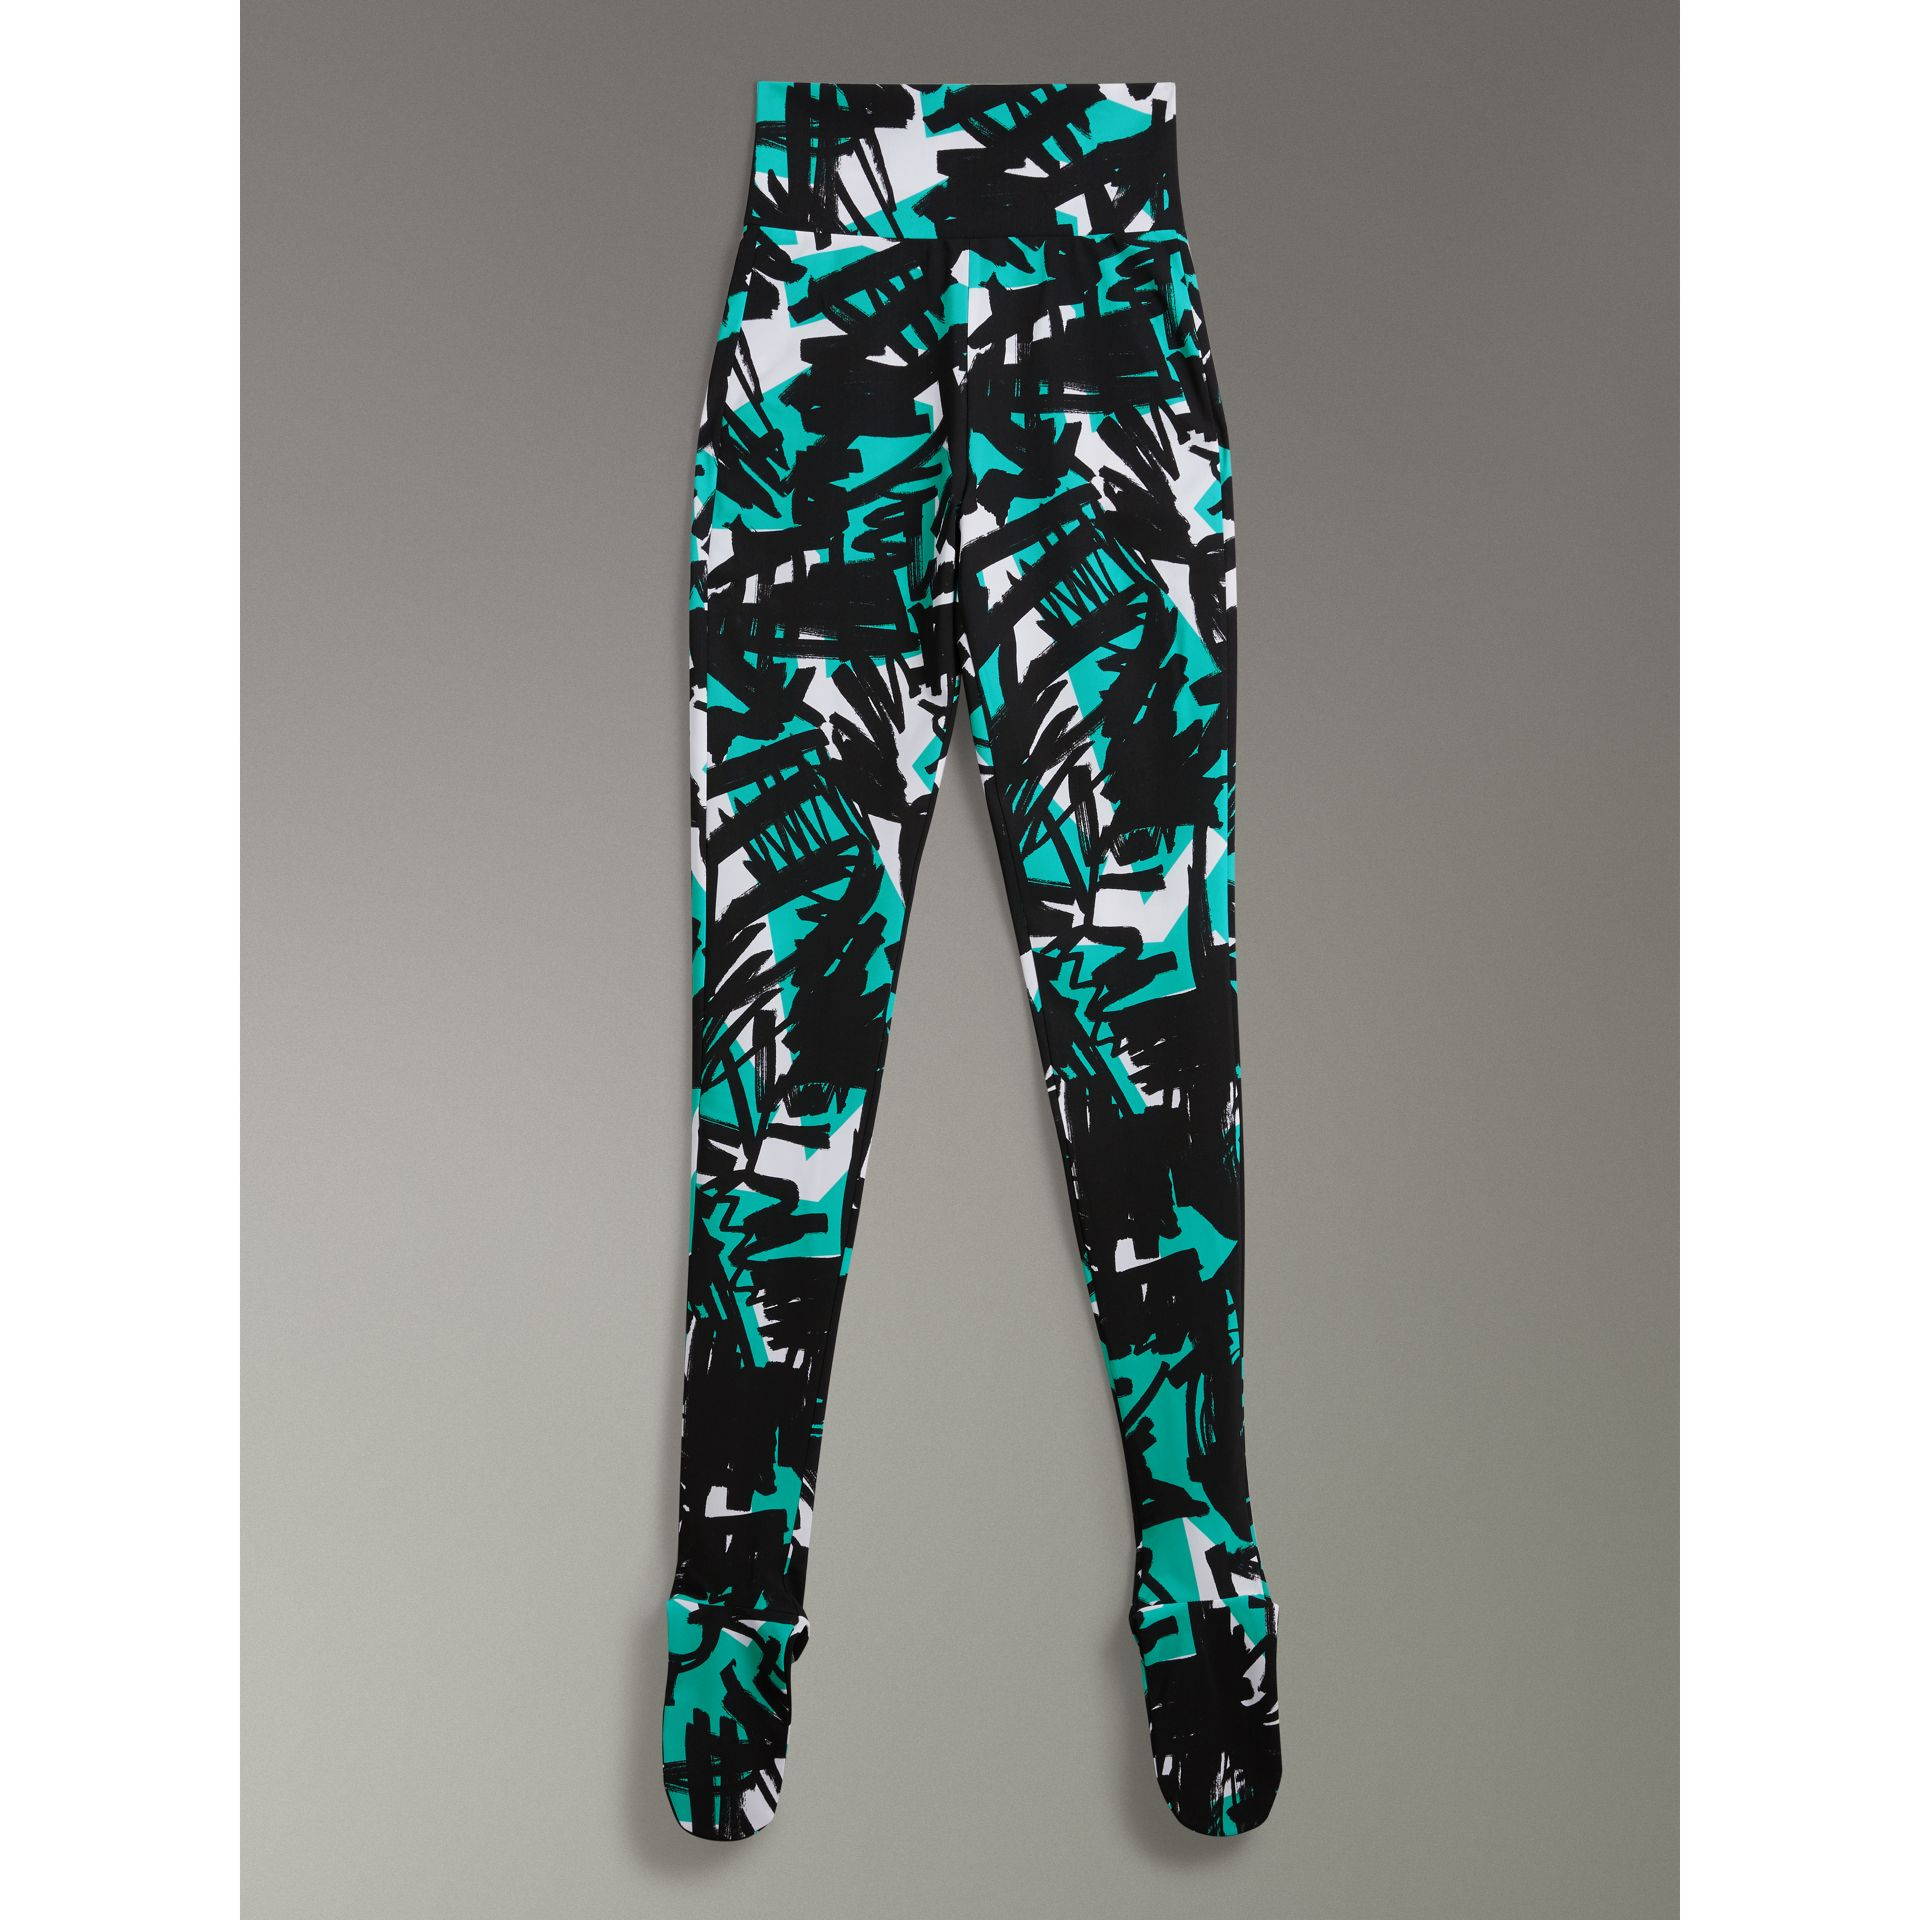 Graffiti Print Leggings in Turquoise - Women | Burberry United Kingdom - gallery image 3